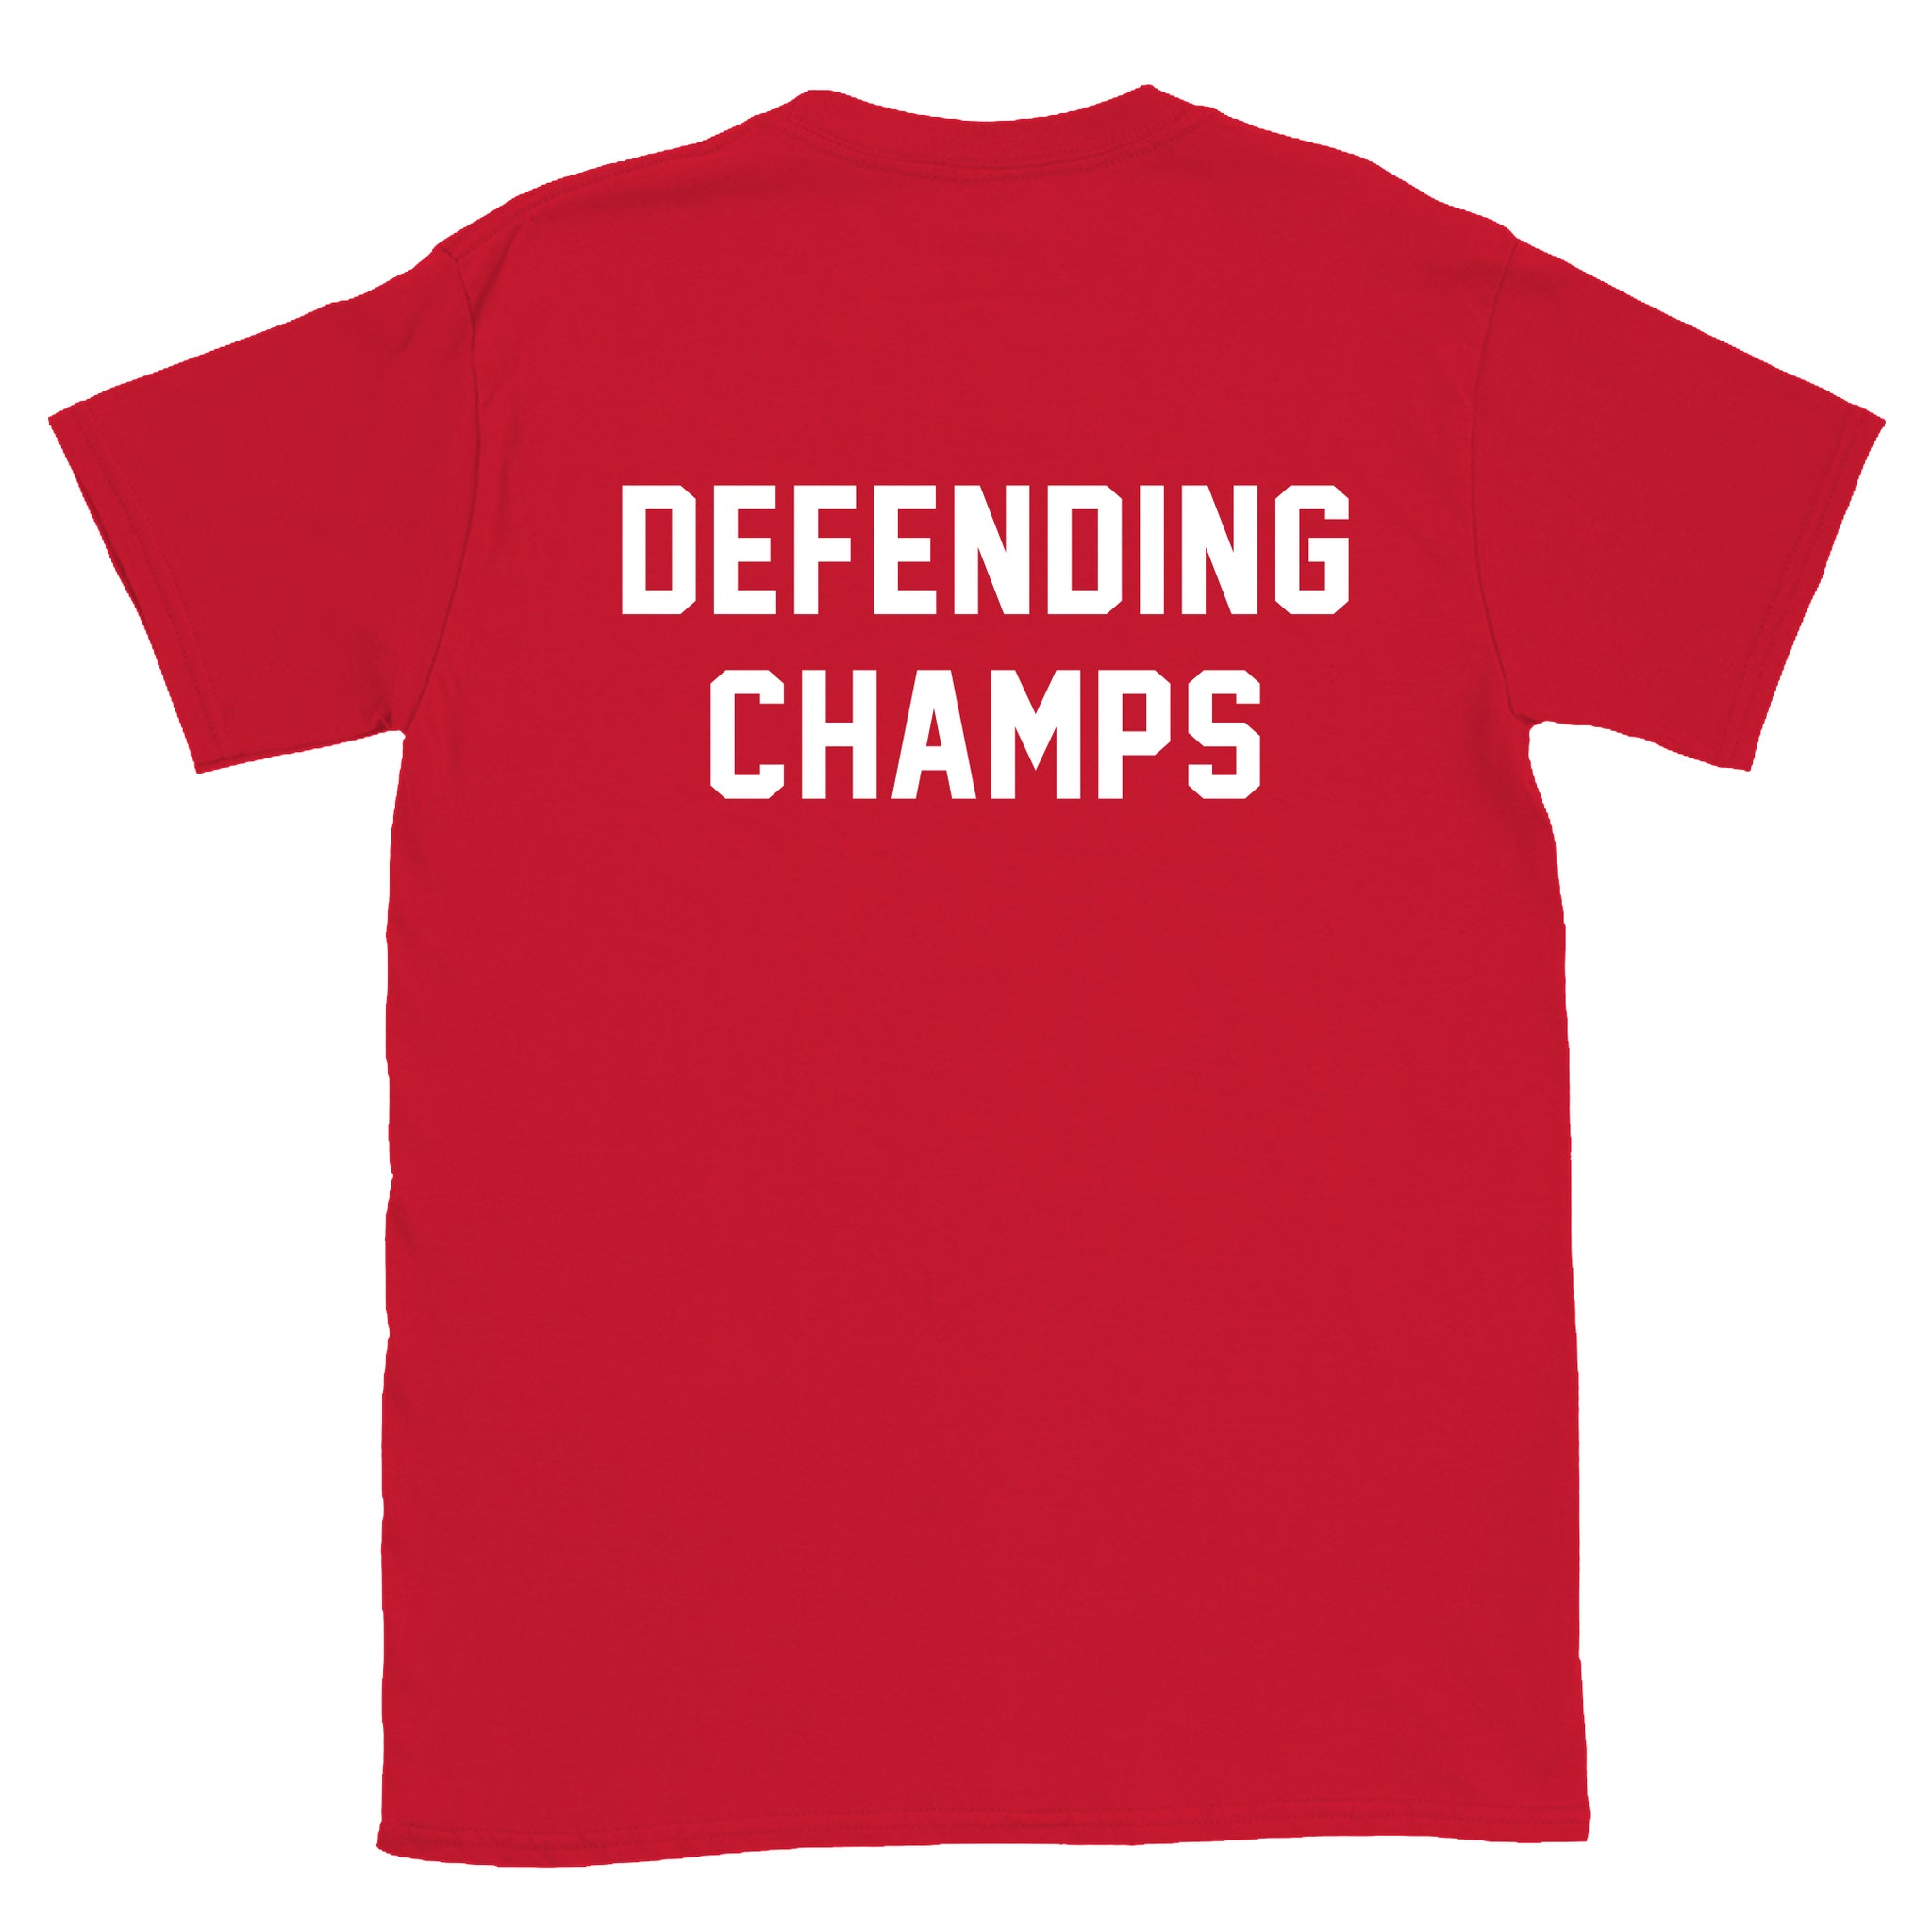 DEFENDING CHAMPS - Red